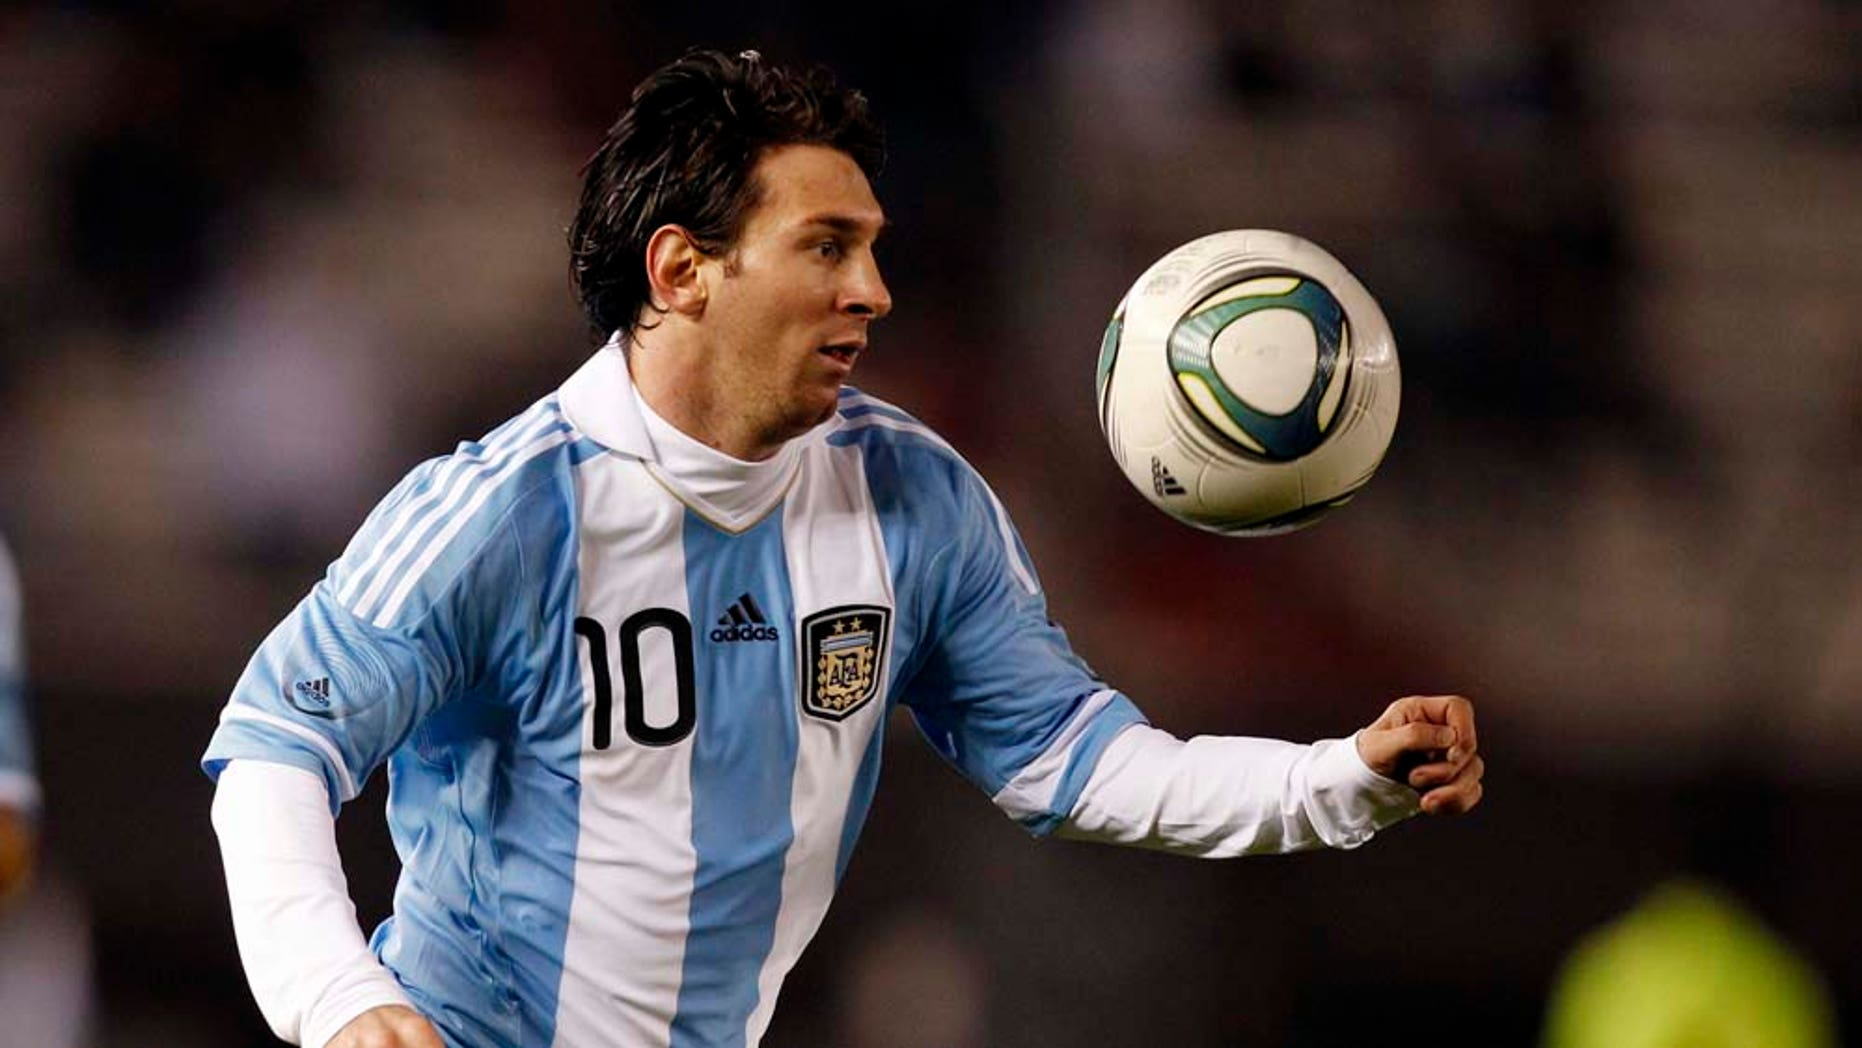 Argentina's Lionel Messi keeps his eye on the ball at a friendly soccer match with Albania ahead of the upcoming 2011 Copa America in Buenos Aires, Argentina, Monday June 20, 2011. (AP Photo/Natacha Pisarenko)